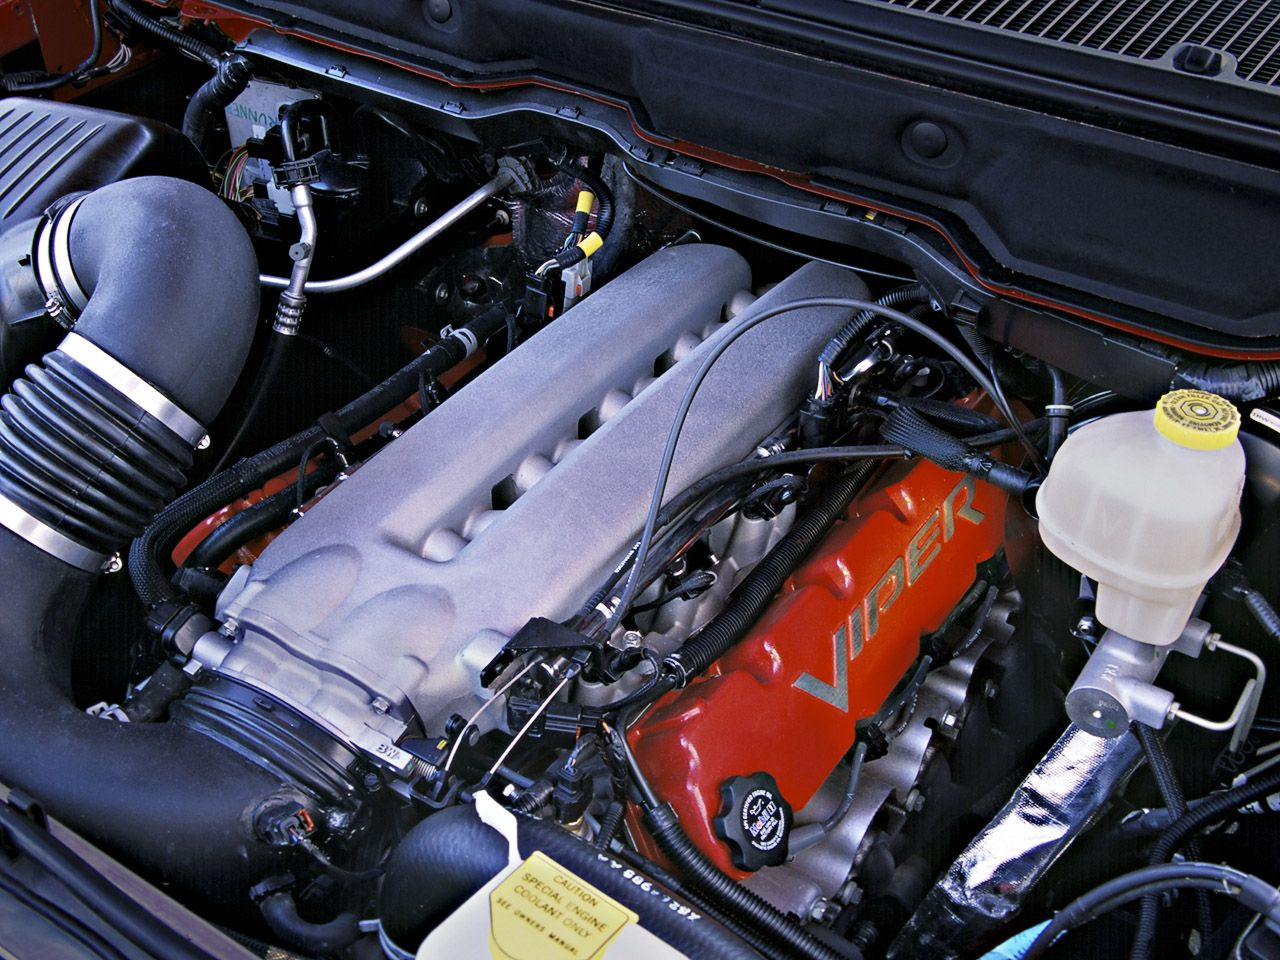 Dodge Ram Srt10 Engine With Images Ram Srt 10 Dodge Ram